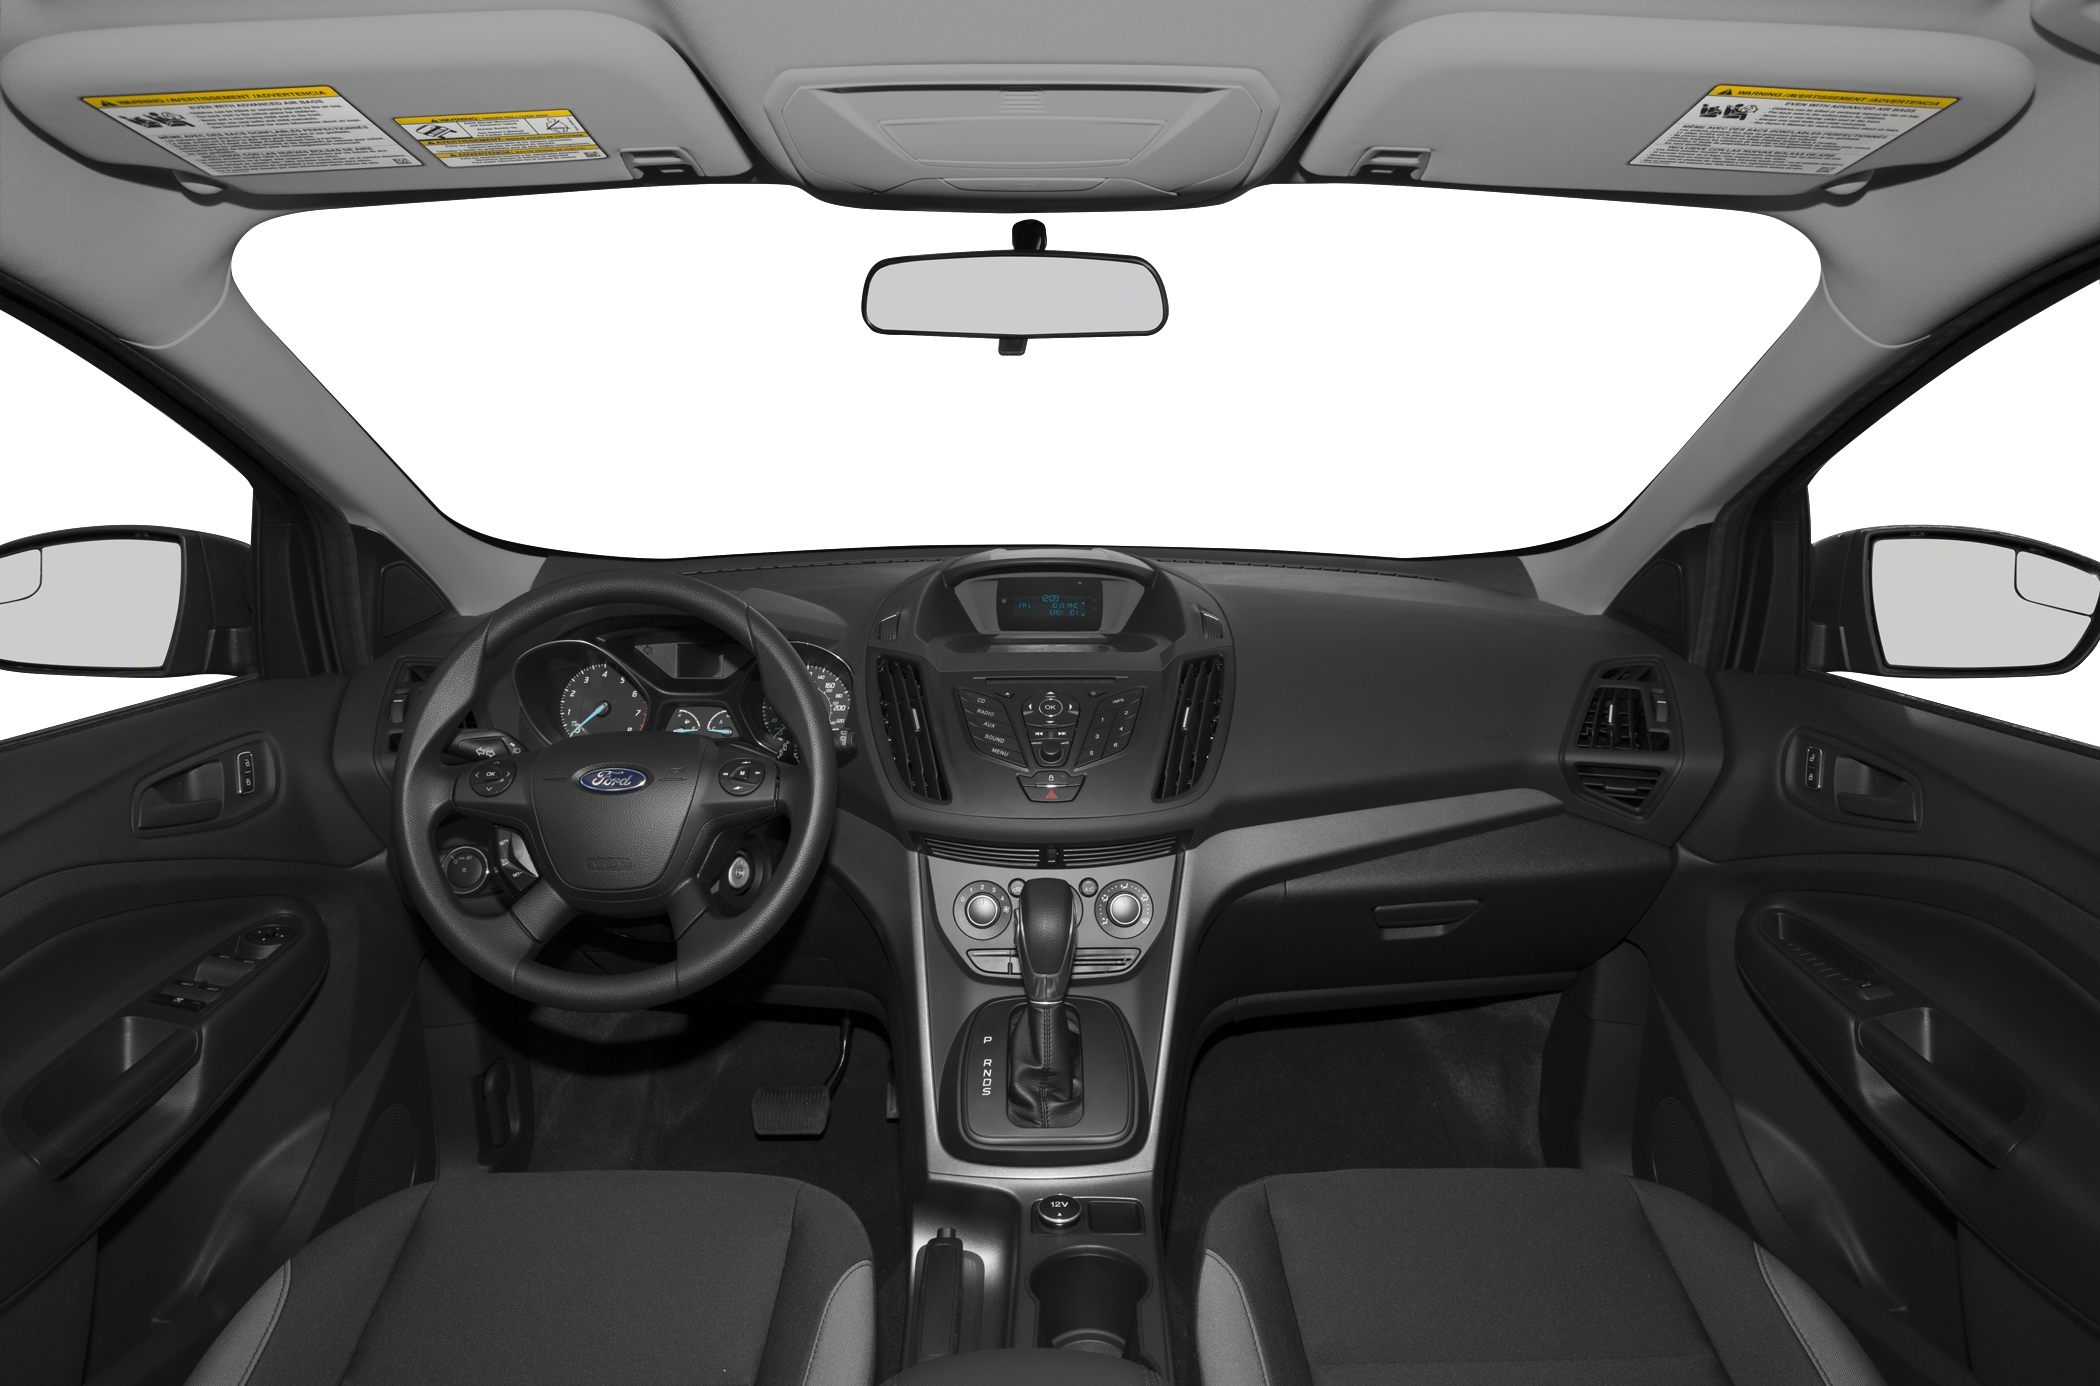 new 2015 ford escape price photos reviews safety ratings ford escape invoice price